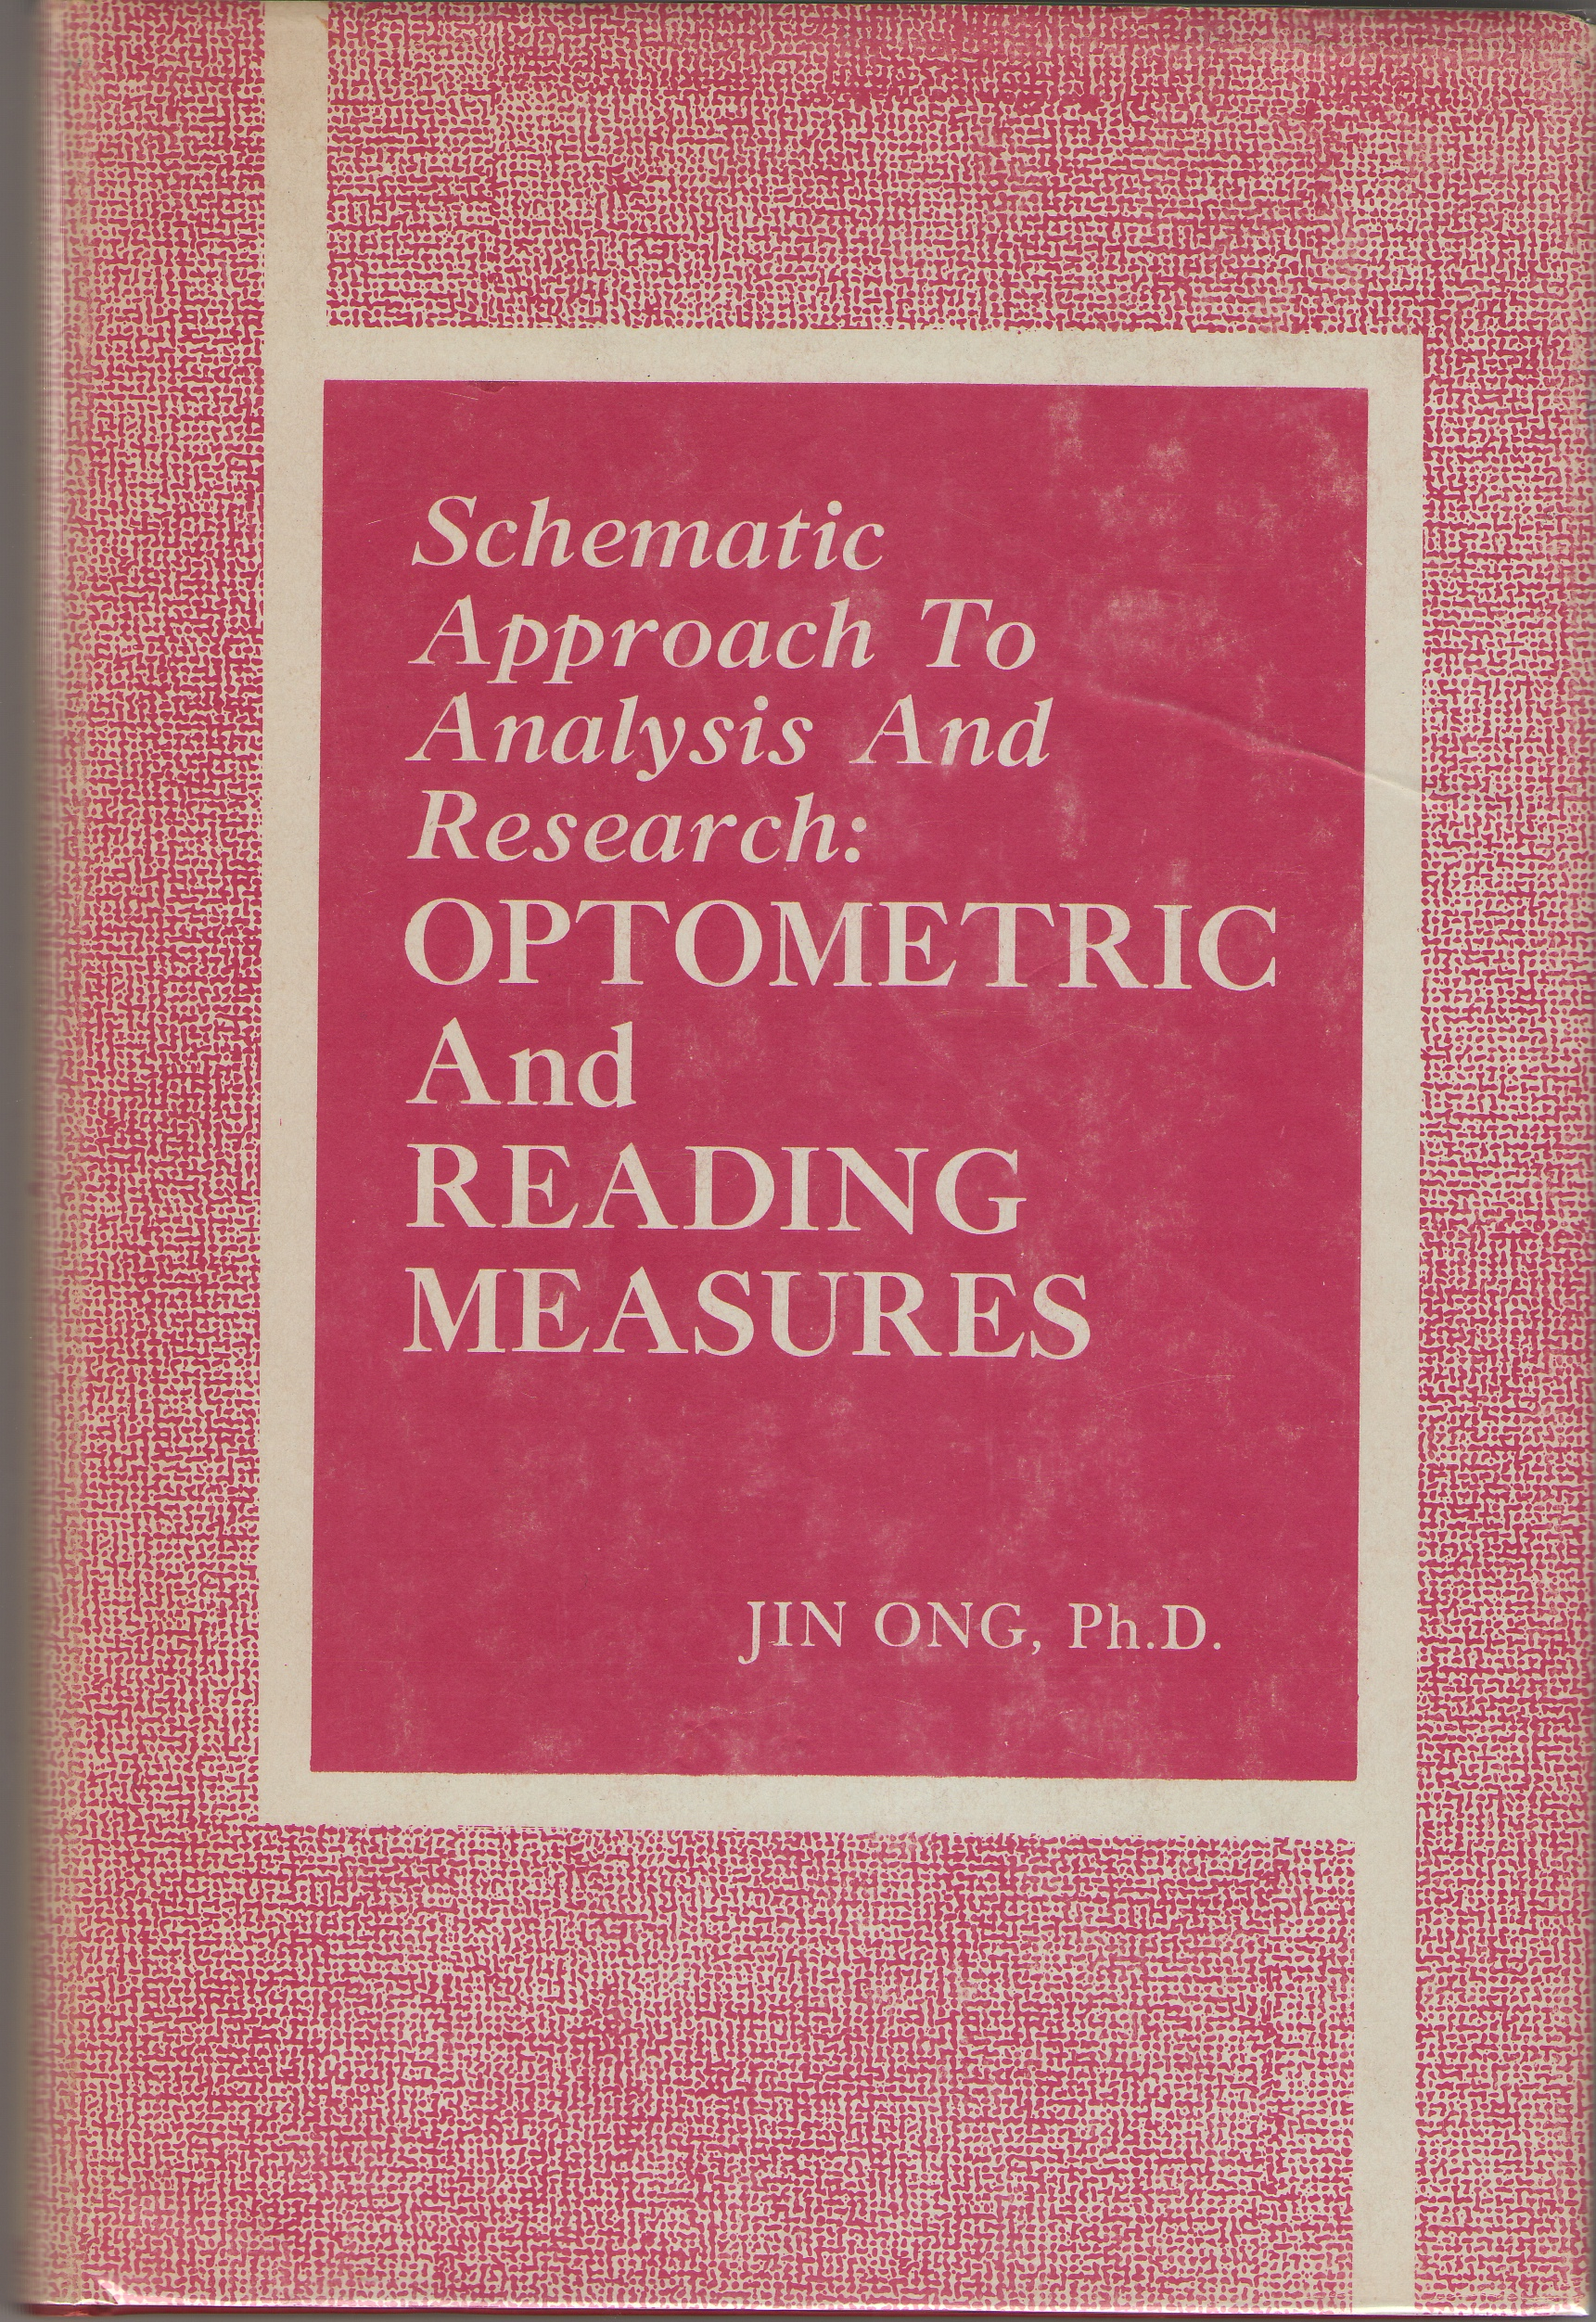 Image for Schematic Approach To Analysis And Research: Optometric And Reading Measures